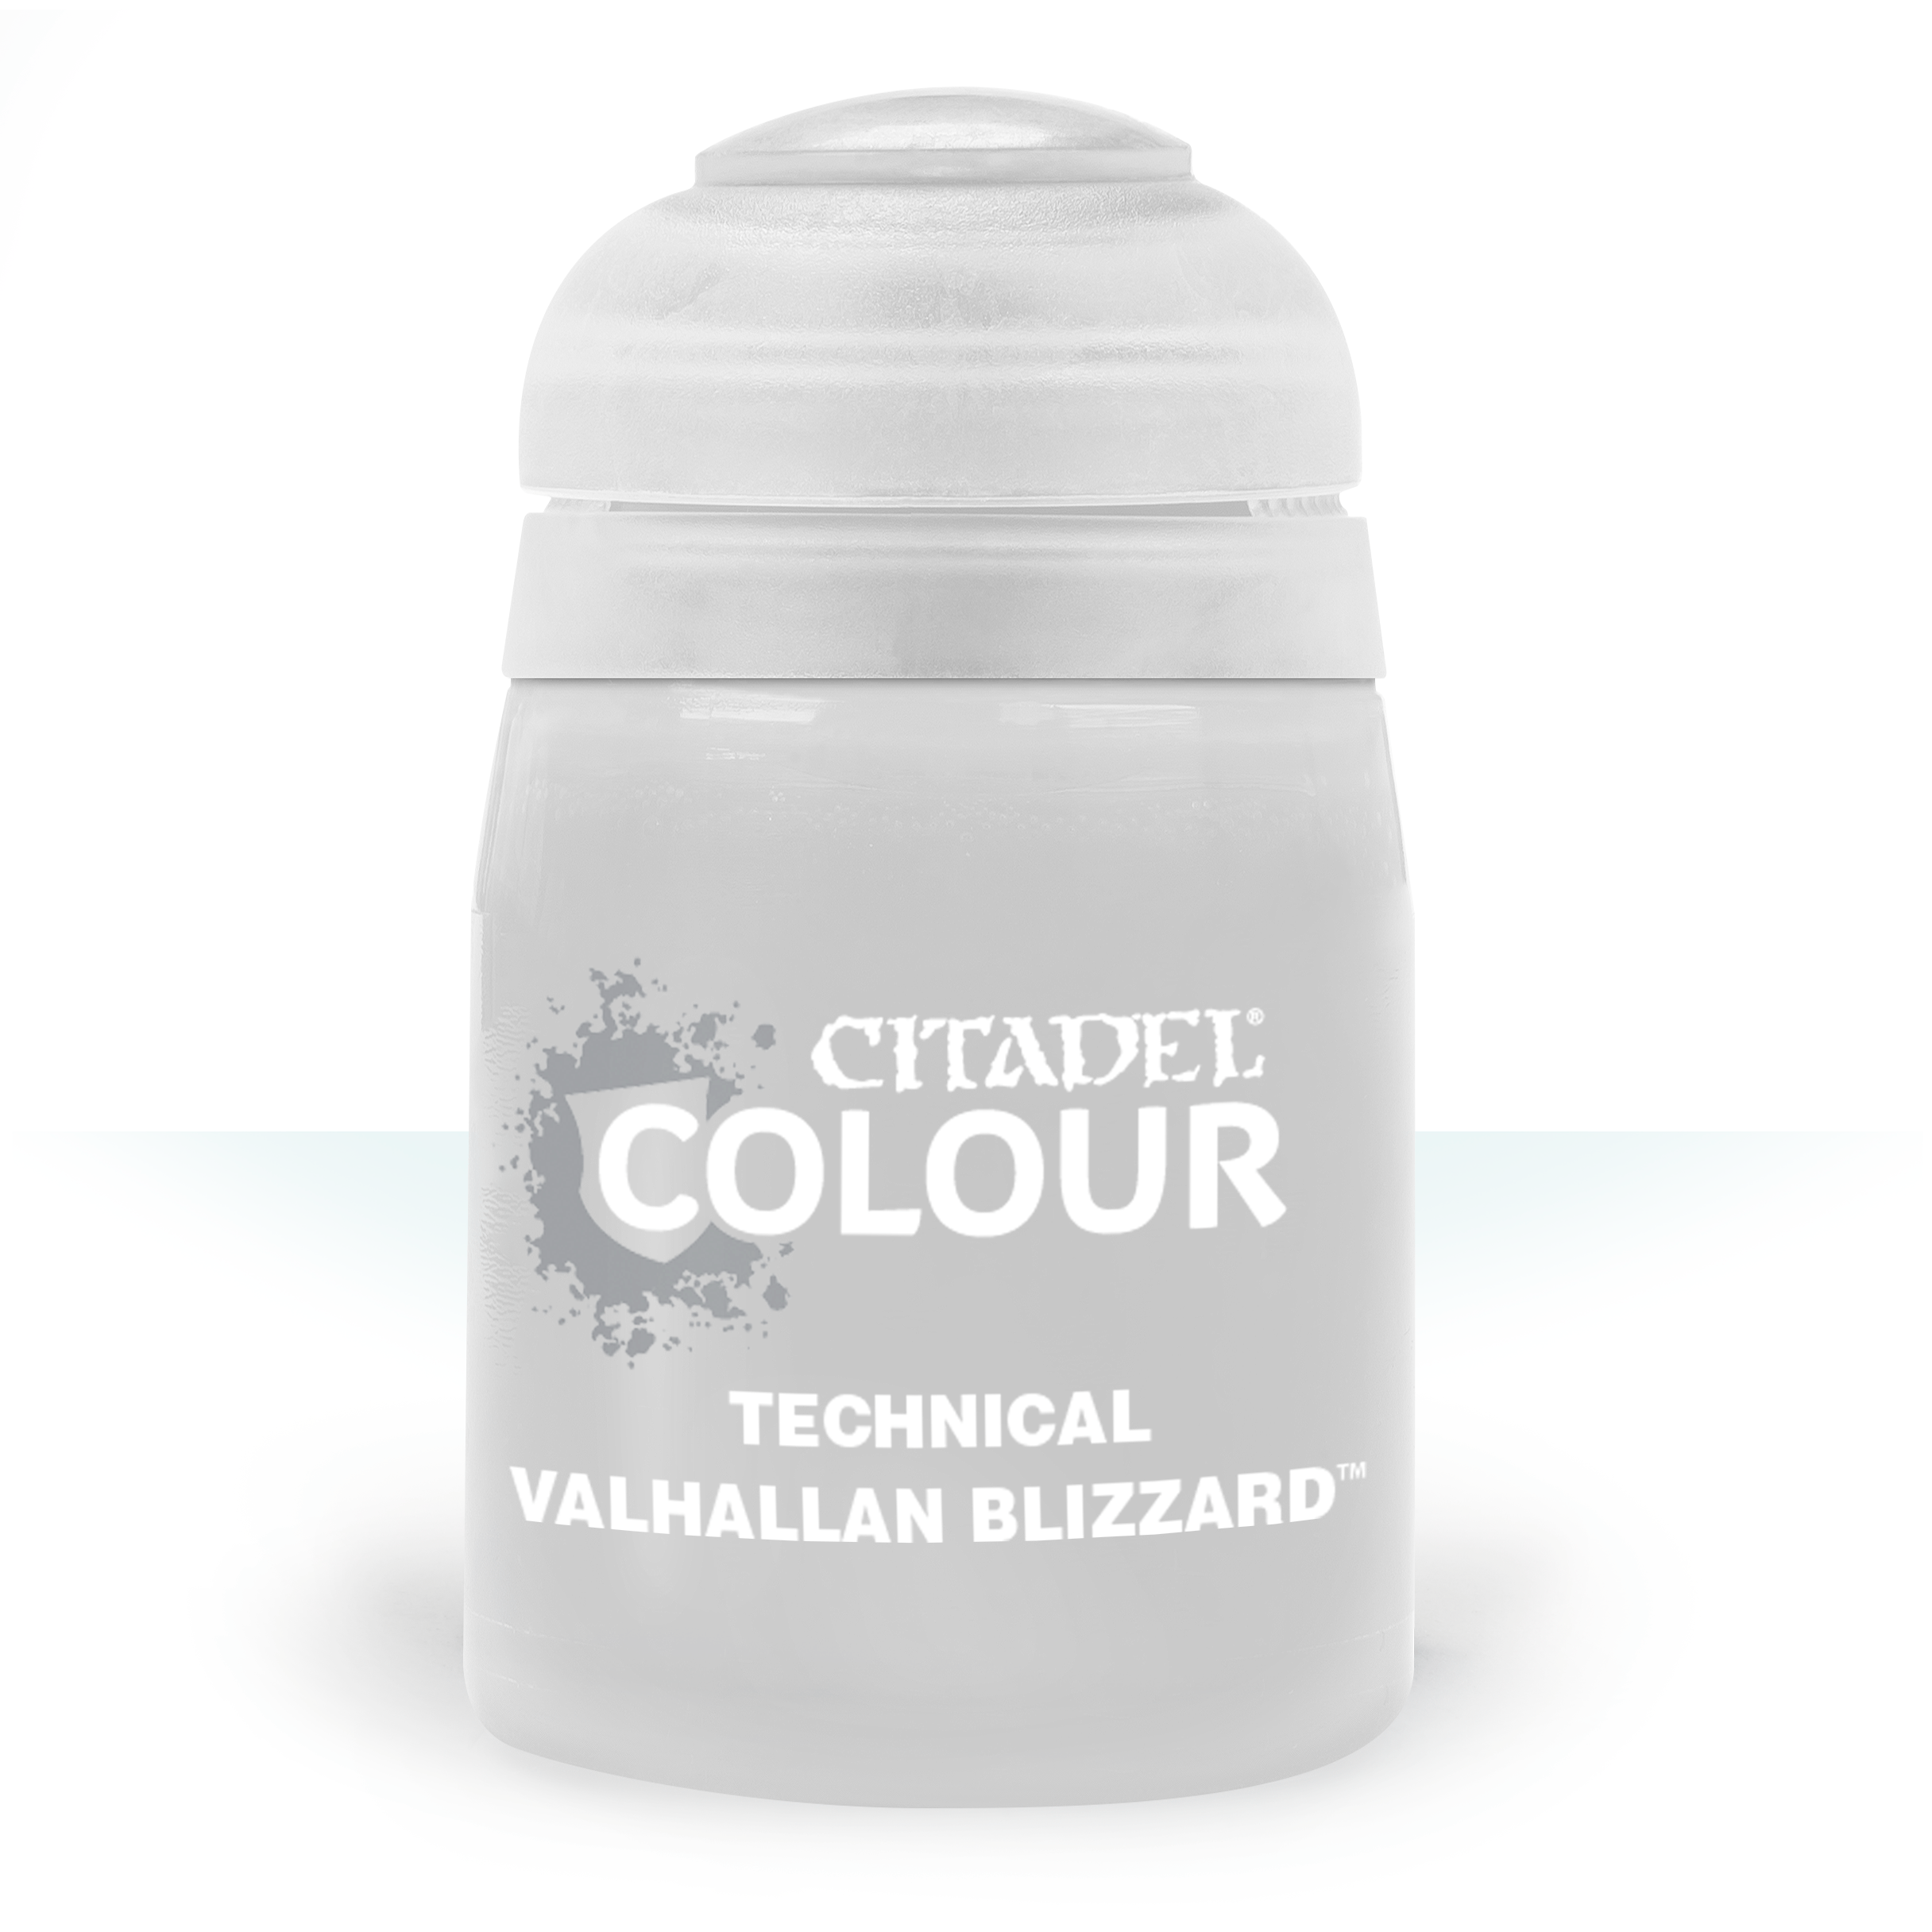 Citadel Technical Paints: Valhallan Blizzard